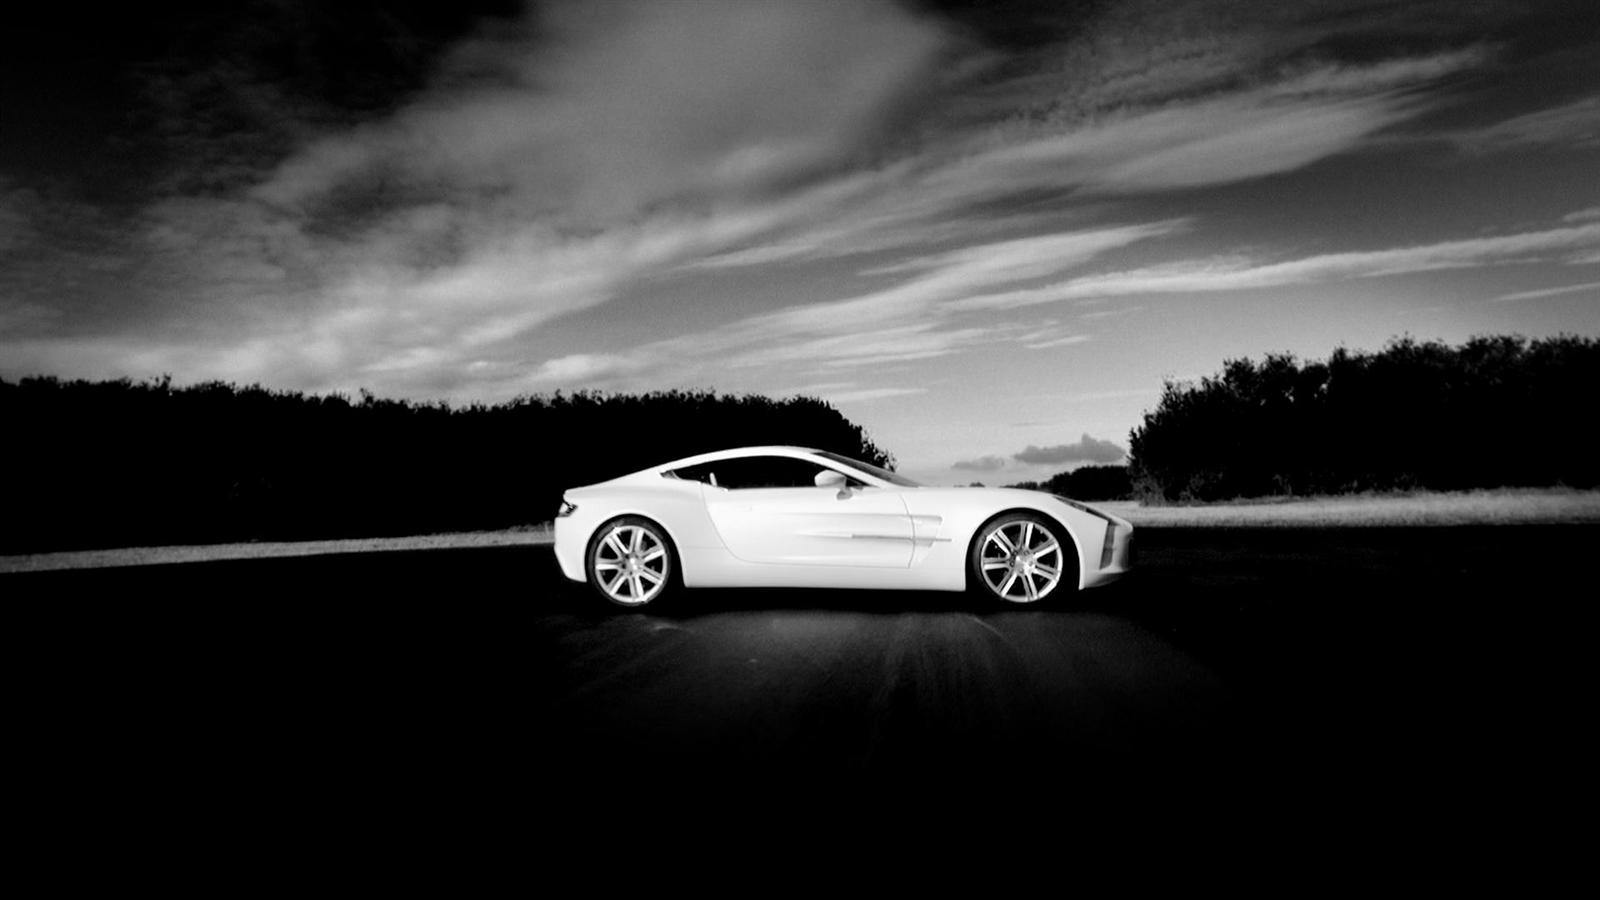 aston martin one 77 wallpaper white Vehicle Pictures 1600x900